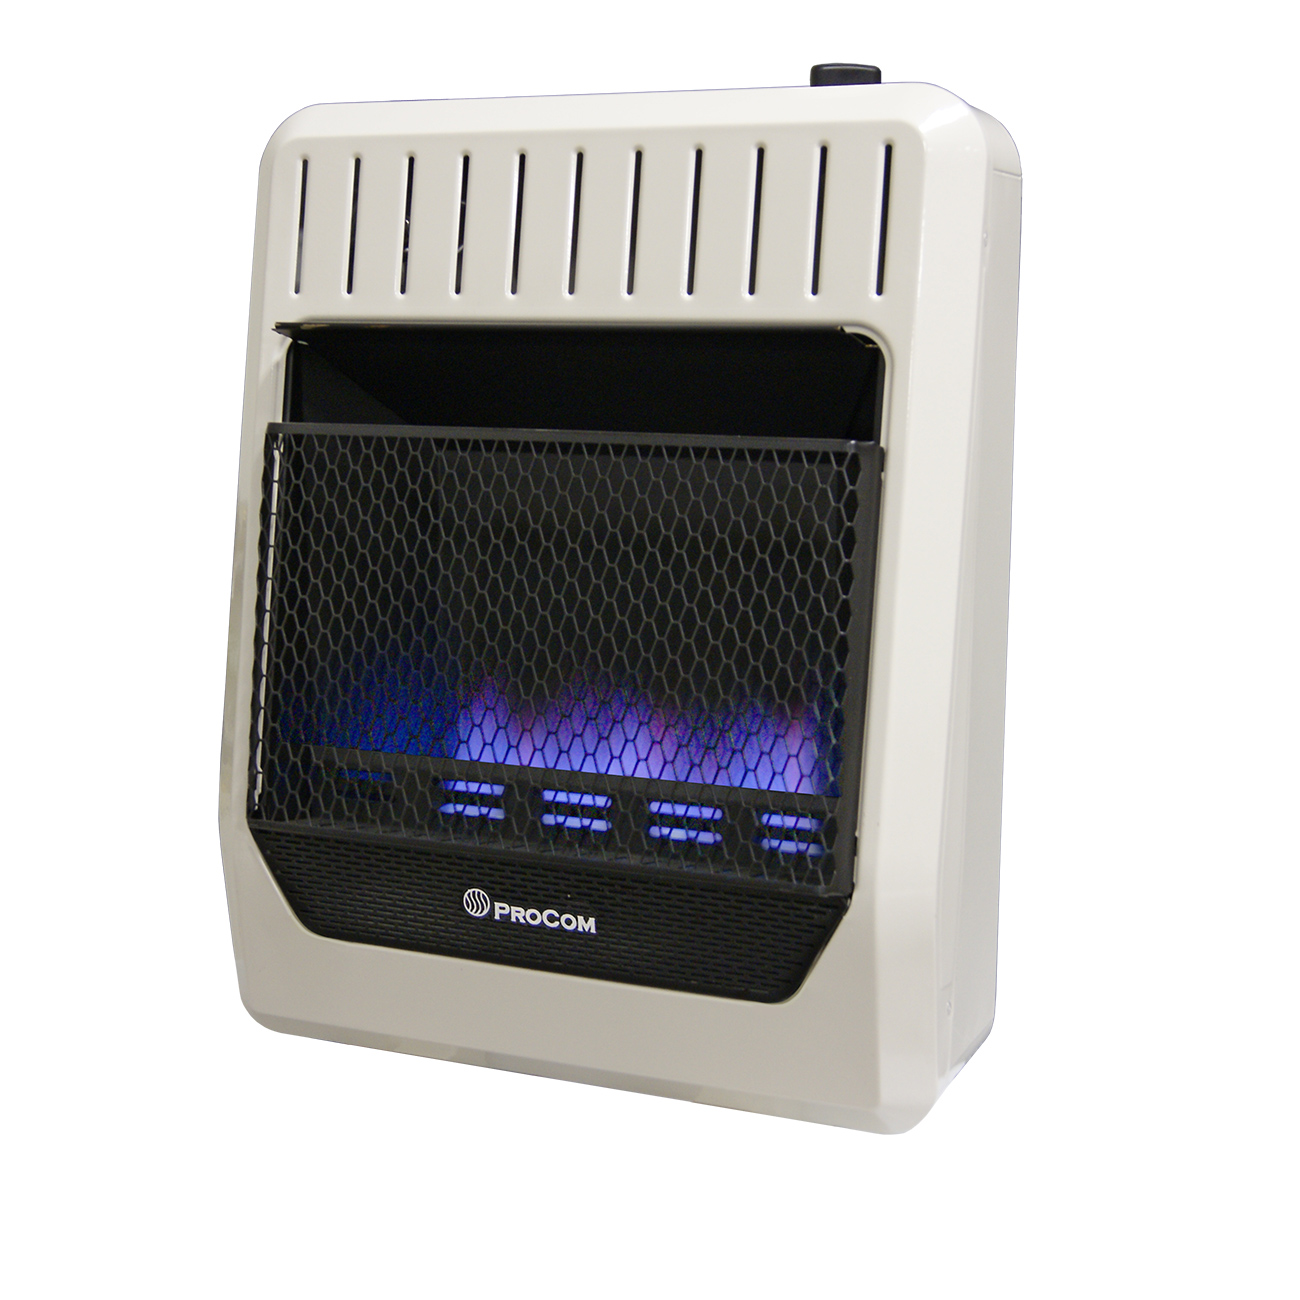 Btu Natural Gas Blue Flame Thermostat Heater